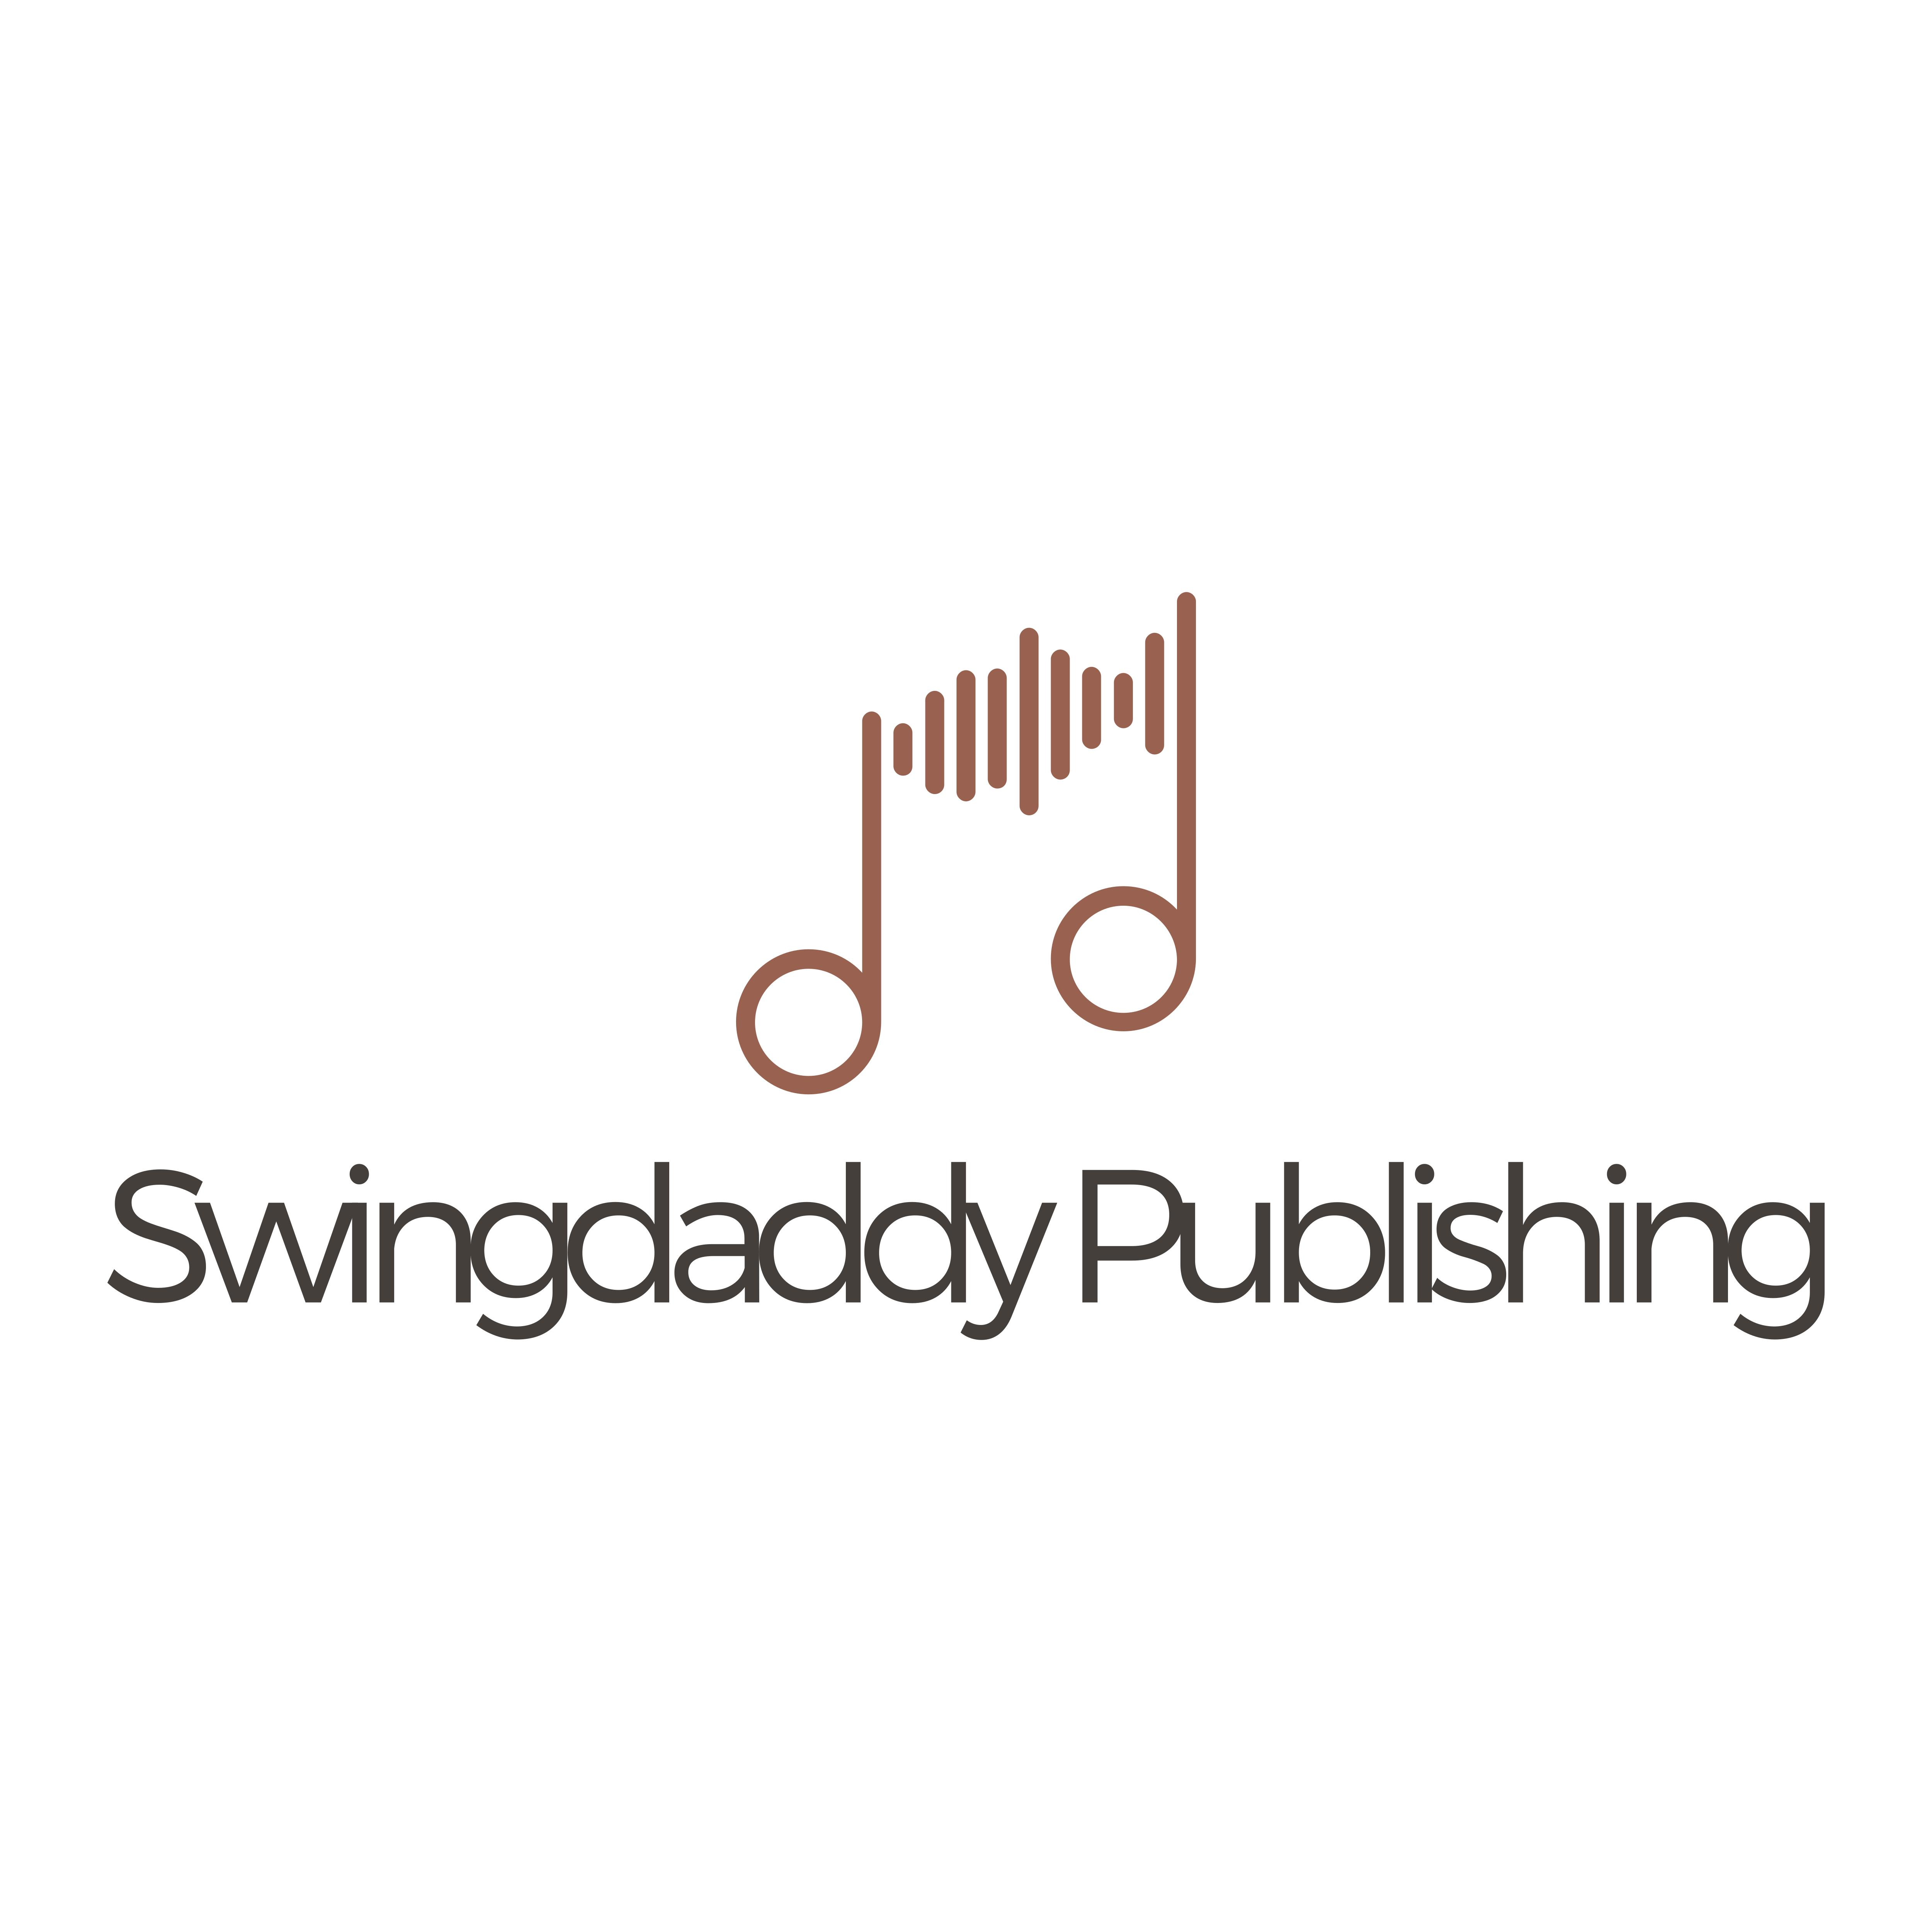 logo Sole MIoSwing Daddy